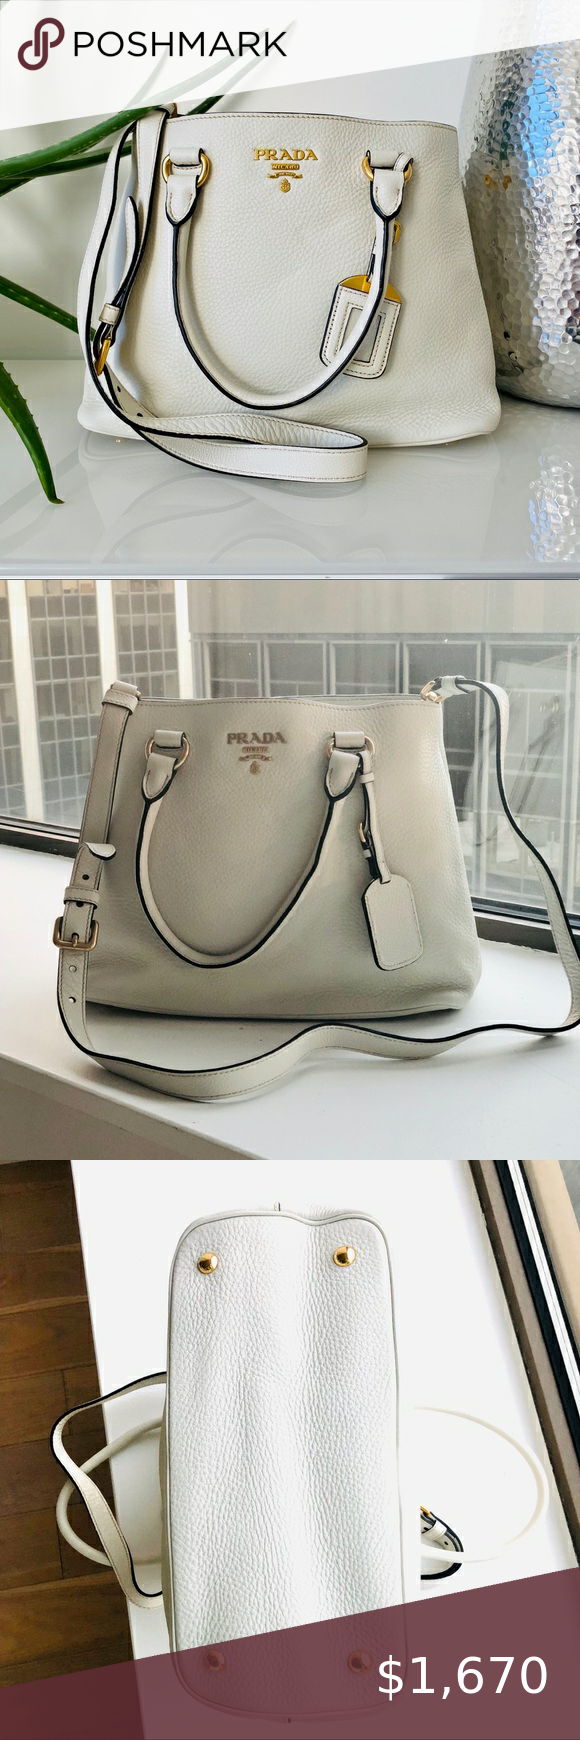 Photo of New Prada Vitello Phenix Handbag This item has original tags and shows no visibl…